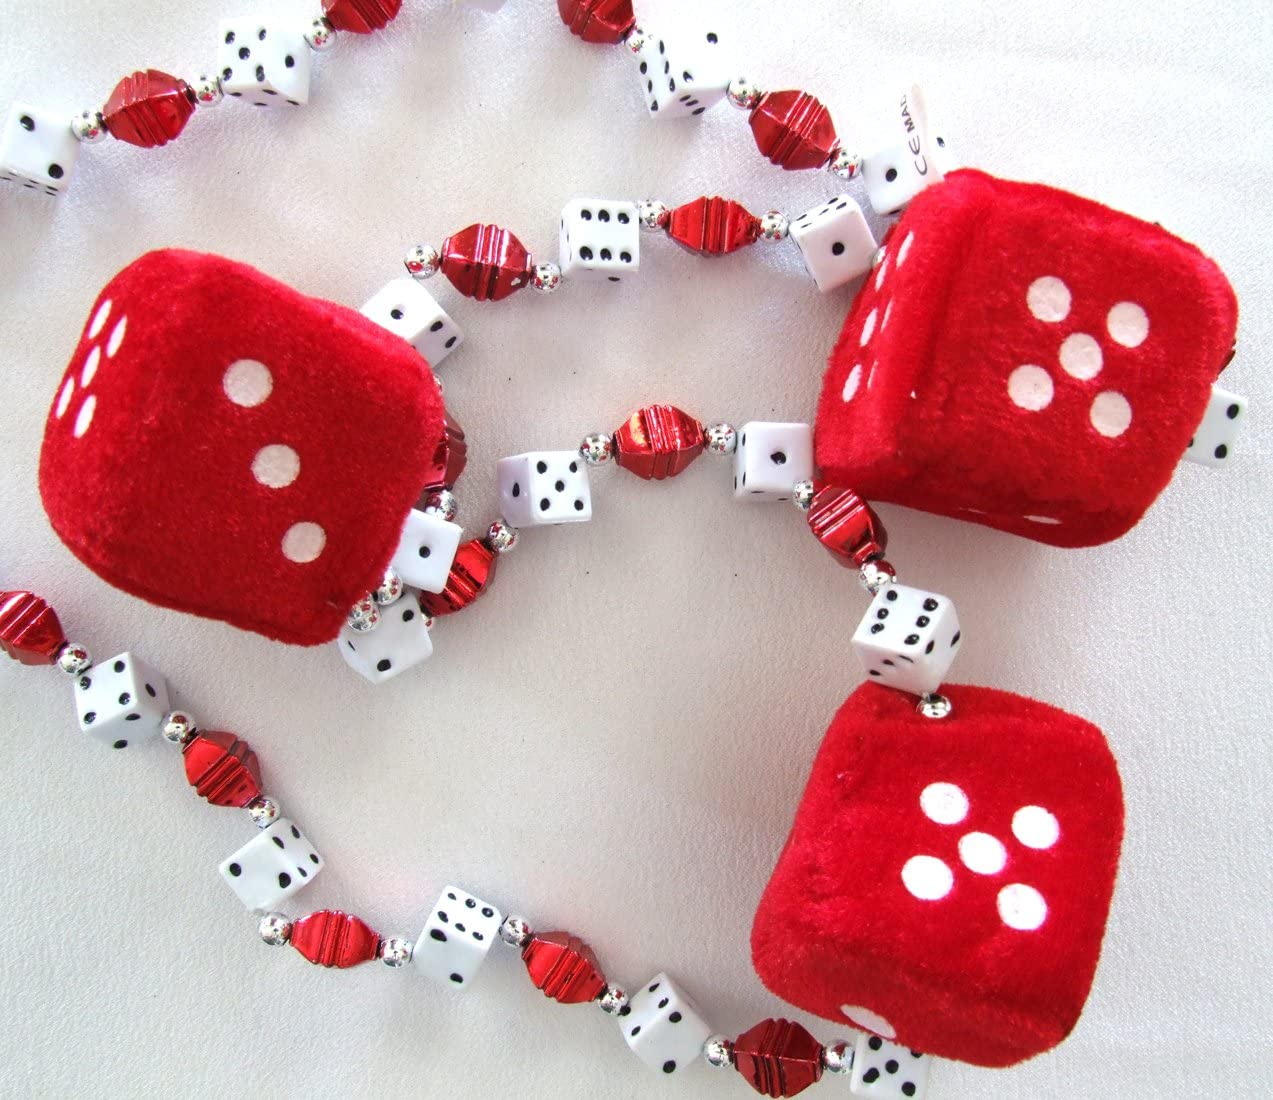 New Orleans Red Fuzzy Dice Craps Mardi Gras Beads Necklace